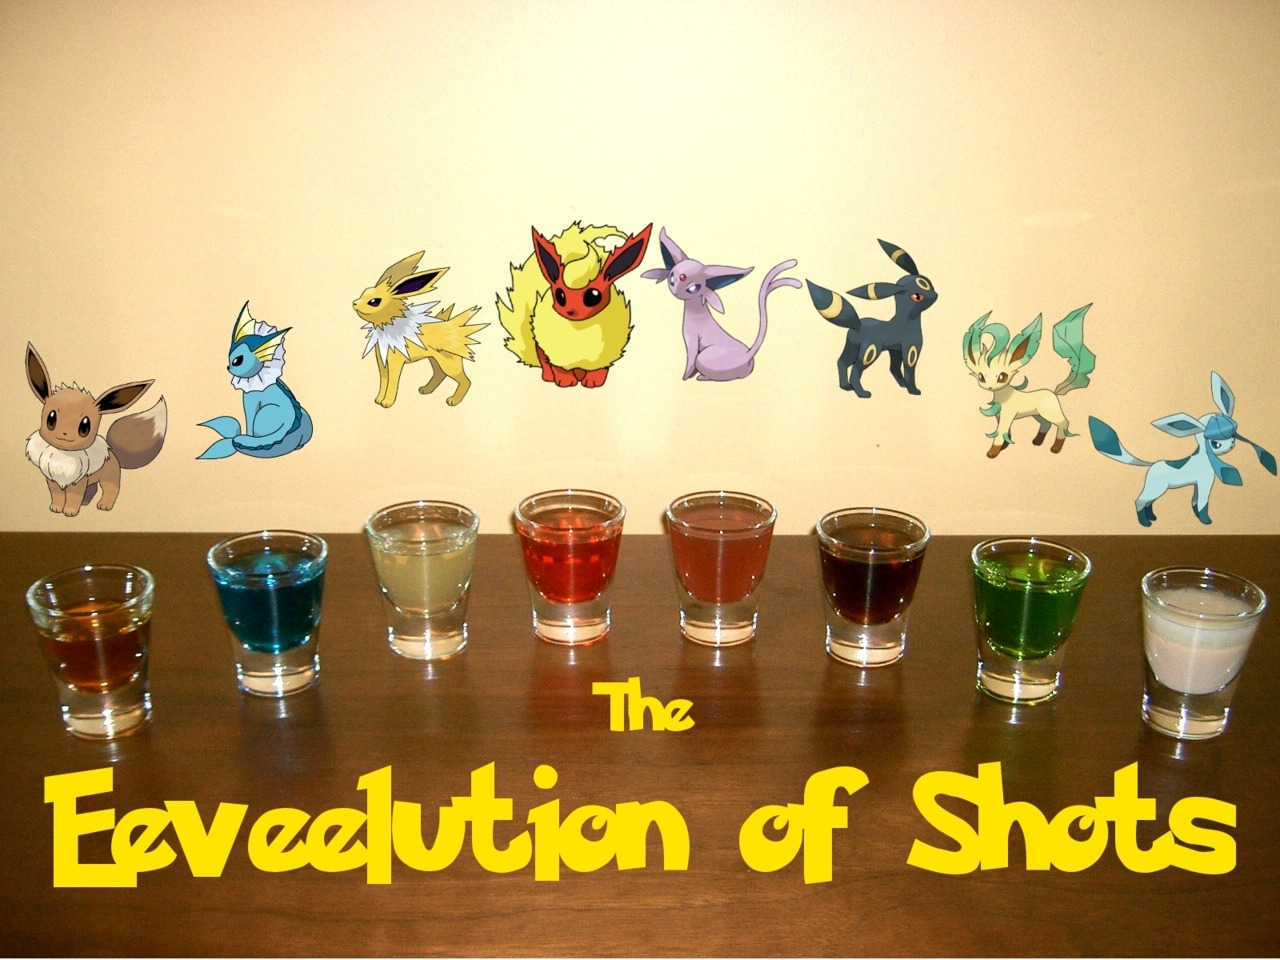 "thedrunkenmoogle:  The Eeveelution of Shots (Pokemon shot set) Ingredients:Eevee:1/4 simple syrup1 oz Bourbon whiskeydash Angostura bittersdash Orange bittersVaporeon:3/4 oz Blue Curacao3/4 oz VodkaJolteon:3/4 oz Limoncello3/4 citrus Vodka1/4 tsp sugar to dissolveFlareon:1 oz Fire Water (Hot Cinnamon Schnapps)1/2 oz Bacardi 151 1 pinch cinnamonEspeon:1 oz Hpnotiq1/2 oz Gin1/8 oz Grenadine Umbreon:1 oz. Kraken Black Spiced Rum1/2 oz Coconut rumLeafeon:1 oz. Midori1/2 oz. Light rum1/3 oz. GinGlaceon:3/4 oz Irish cream3/4 oz Ice 101 peppermint schnapps  Directions: All of but two of the shots (Flareon and Glaceon) can be made simply by mixing the ingredients in a shot glass.  For Flareon, layer the Bacardi 151 on top and light on fire.  Sprinkle the pinch of cinnamon over the fire for a cool effect.  For Glaceon, layer the Ice 101 peppermint schnapps on top of the Irish cream. ""Because its genetic makeup is irregular, it quickly changes its form due to a variety of causes."" -Pokedex entry for Eevee in Pokemon Black and White Drink created and photographed by Eddie Strickland.   I want all of these."